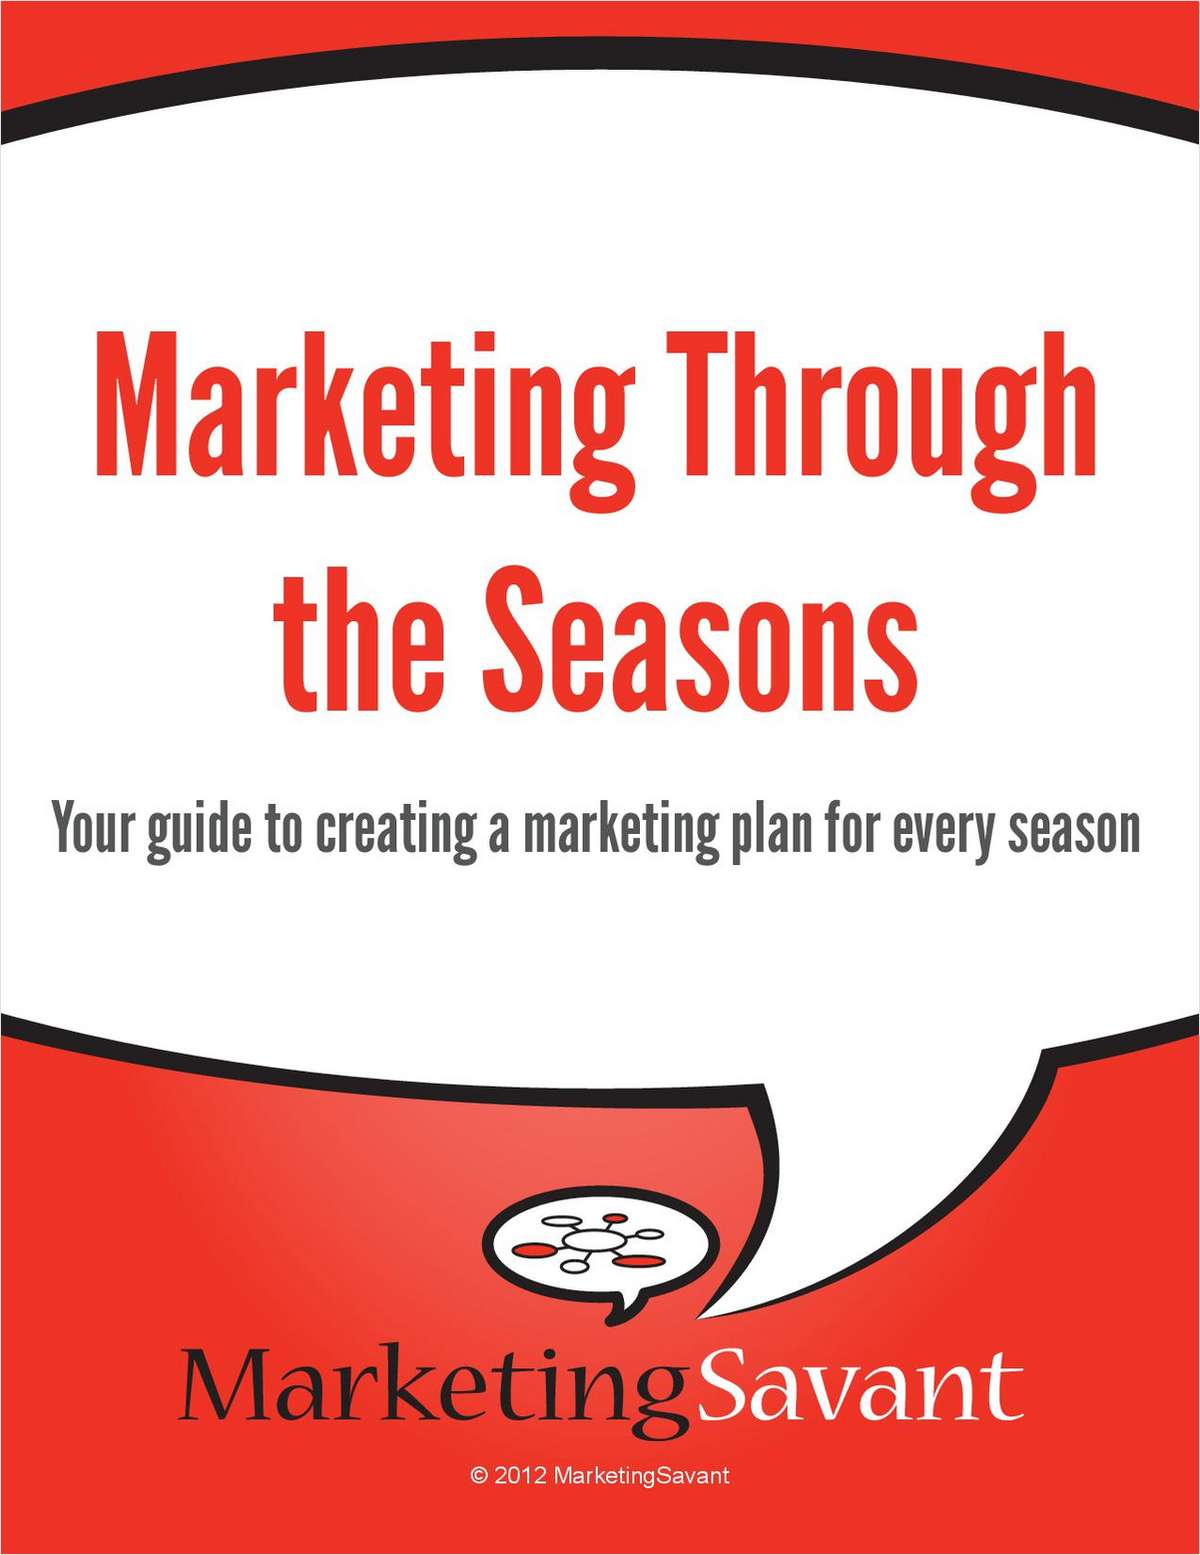 Marketing Through the Seasons